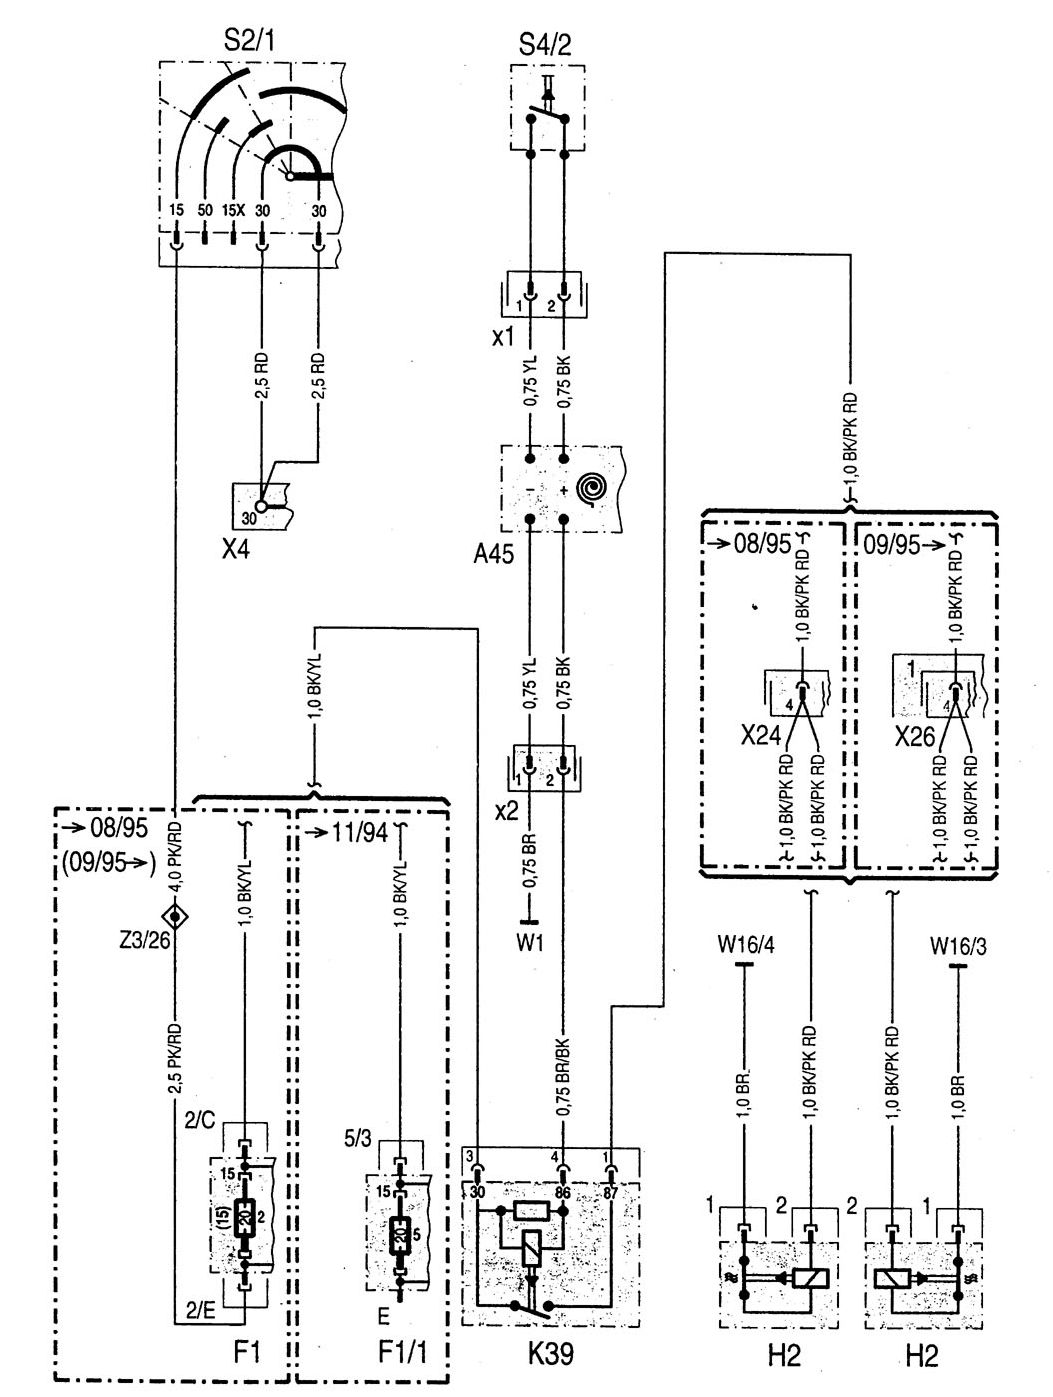 Mercedes Benz Sprinter    Wiring       Diagram         Wiring       Diagram